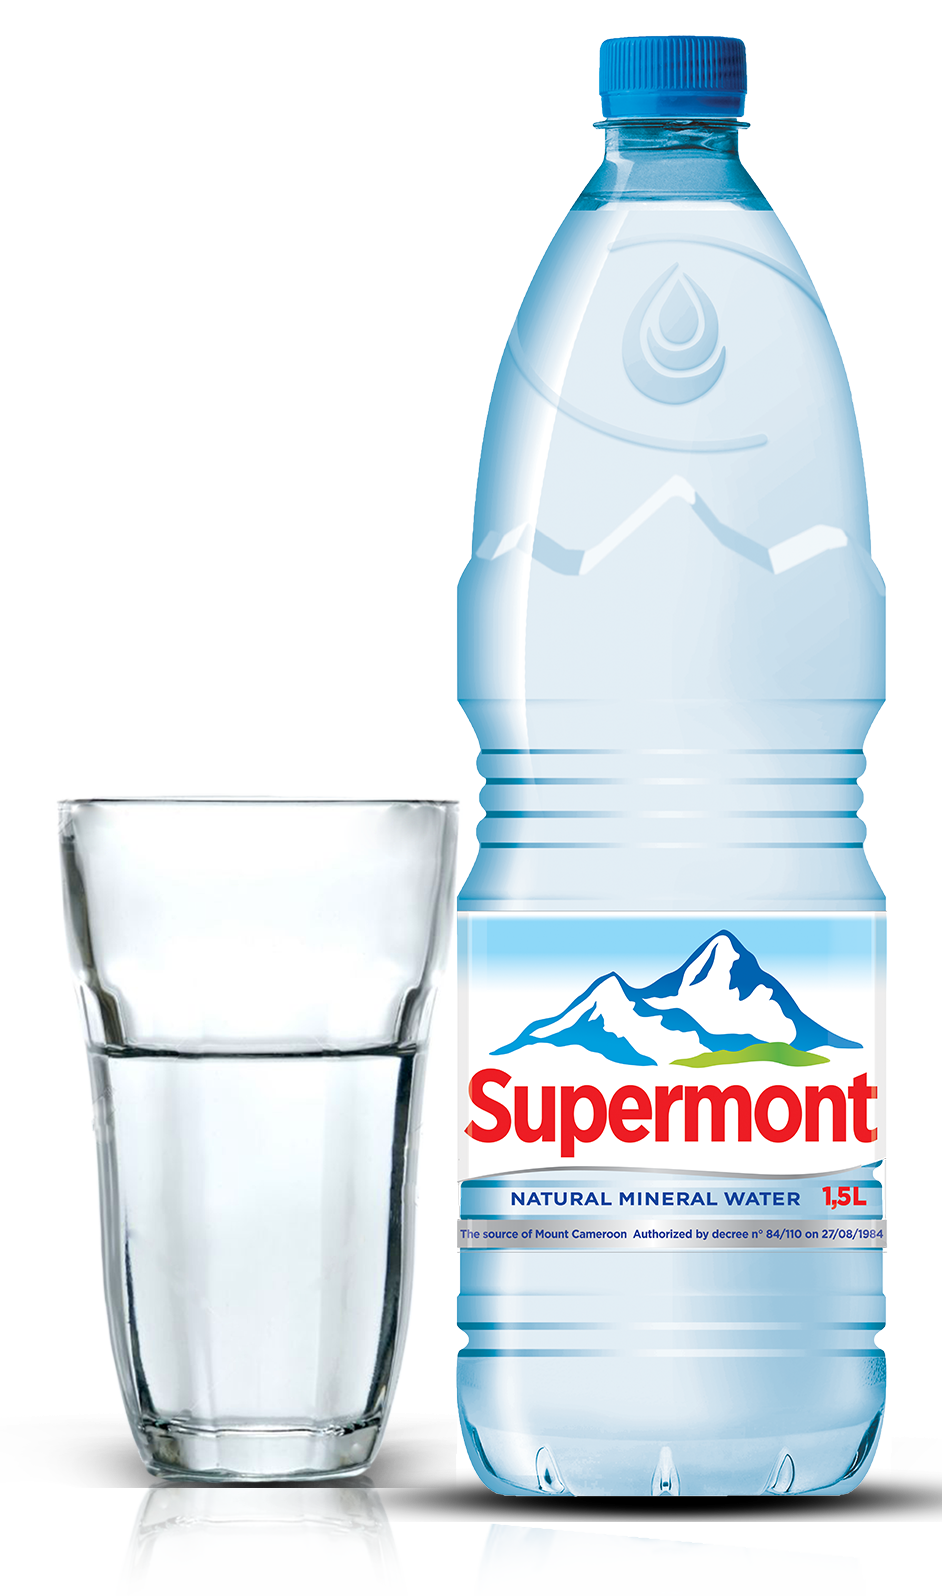 https://www.sourcedupays.com/wp-content/uploads/2016/01/eau-supermont-1-1.png